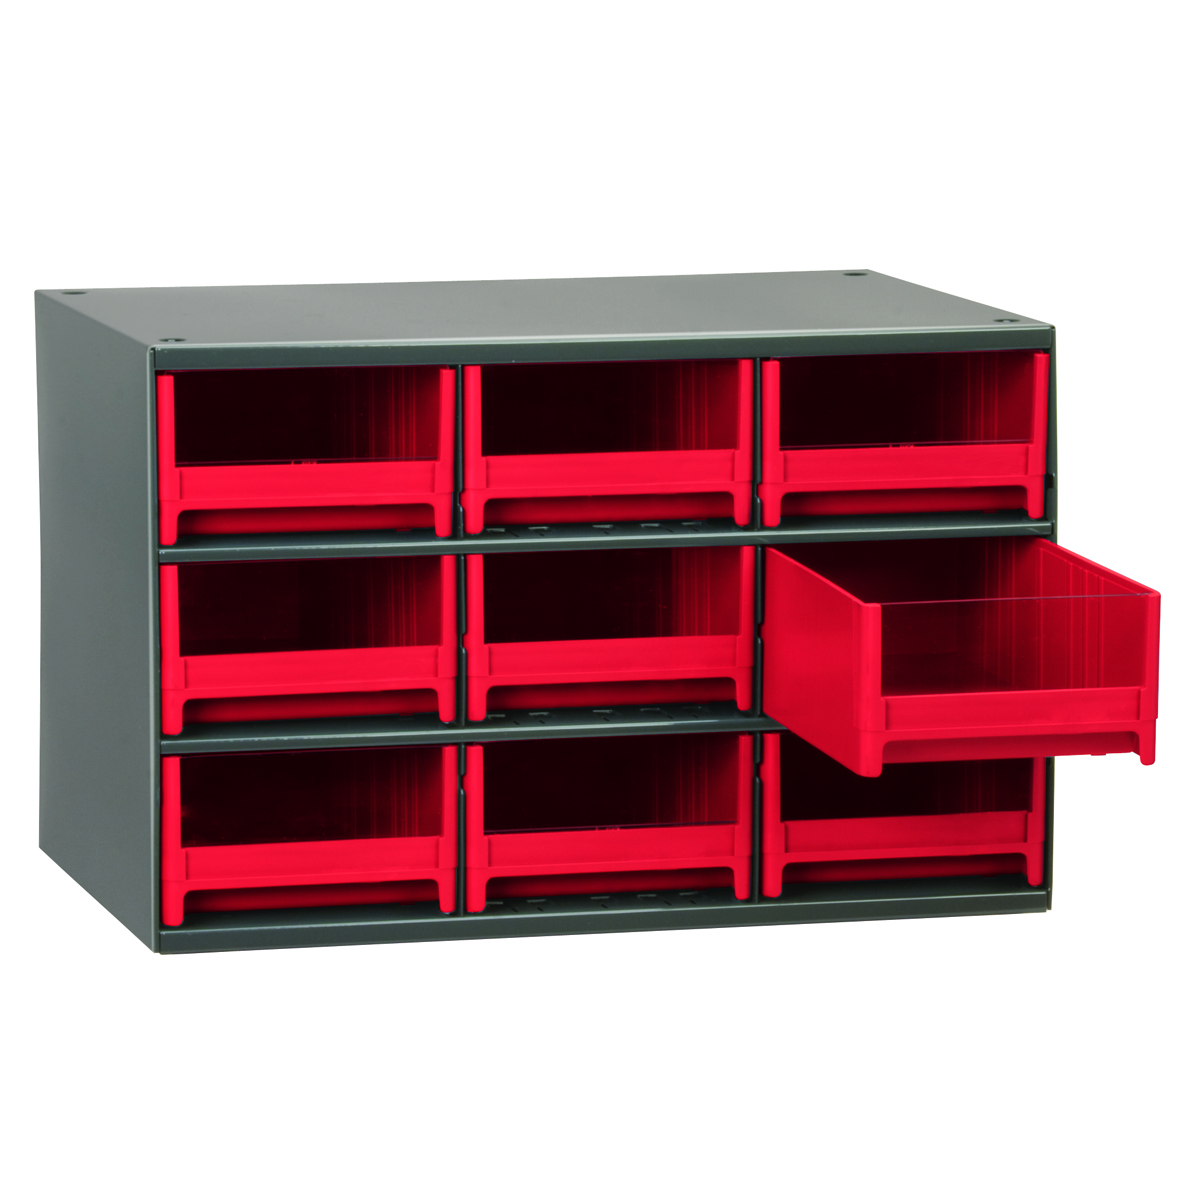 akro mils 19 series metal storage cabinet stackable 9 19909 | 19909red